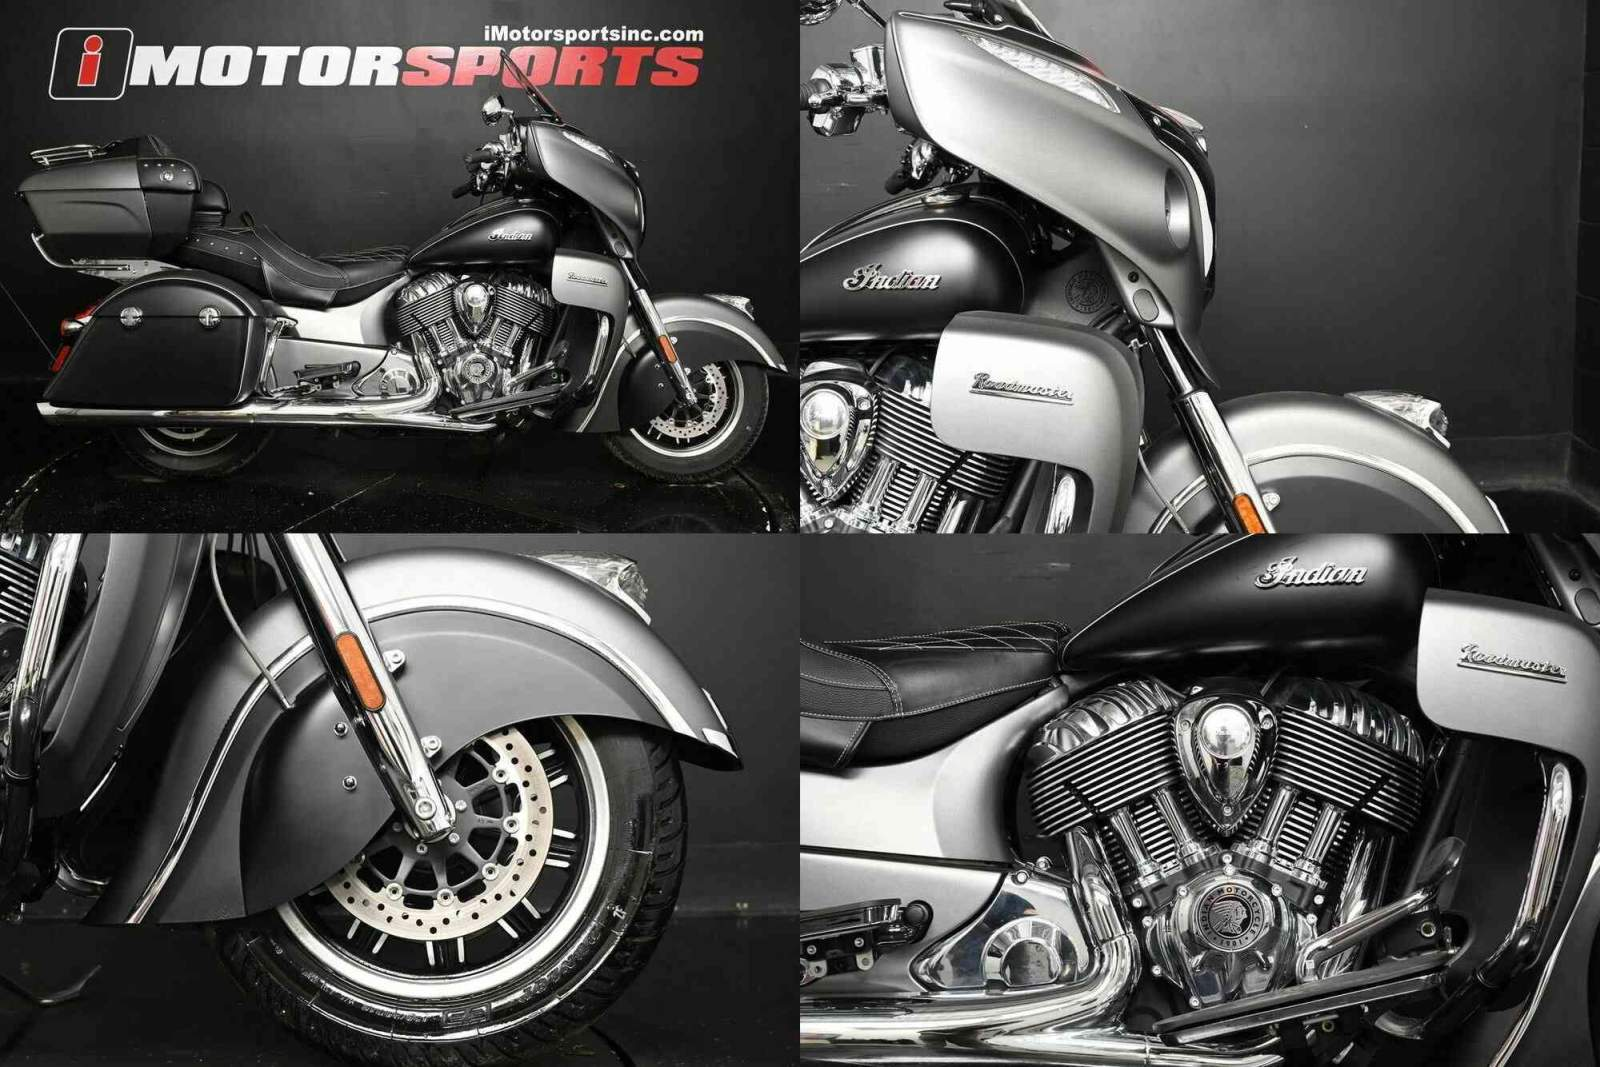 2019 Indian Roadmaster Steel Gray Smoke / Thunder Black Smoke Black used for sale